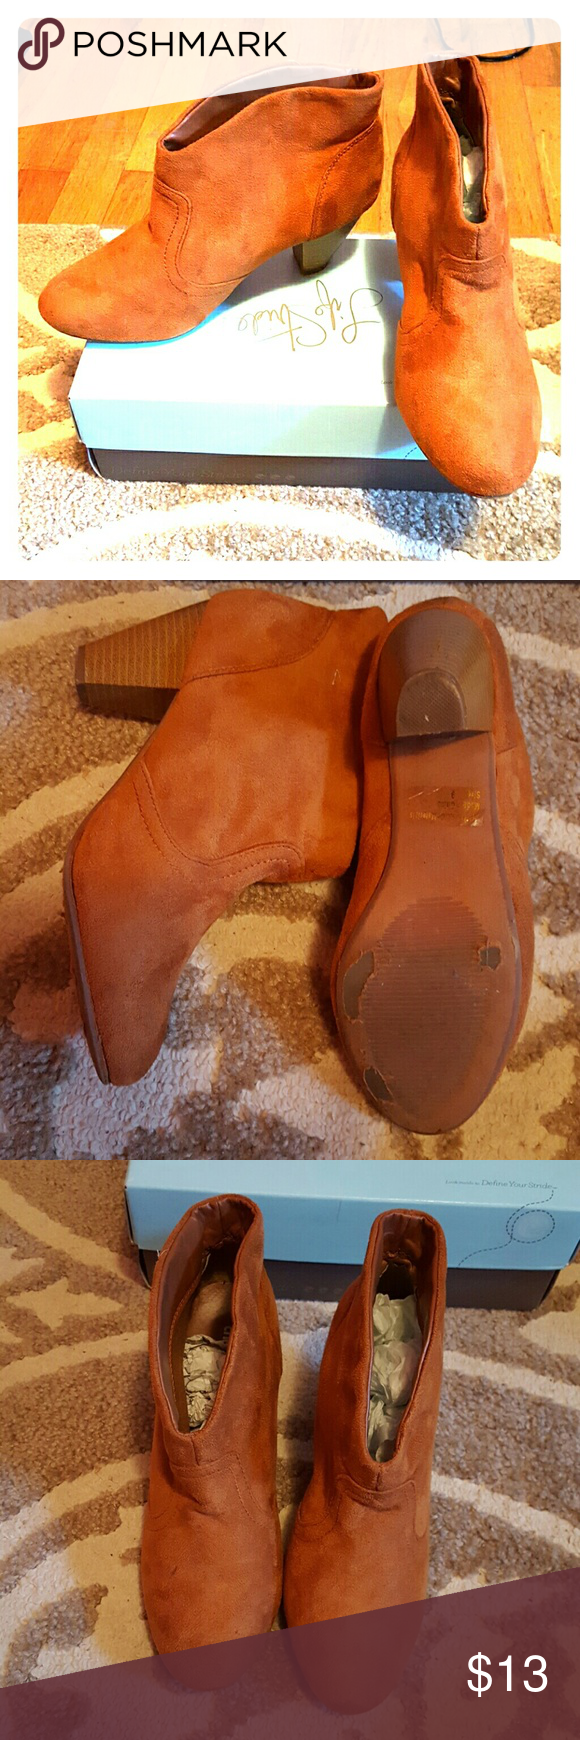 Charlotte Russe Saddle Brown Ankle Booties GUC, the felt part has no stains! Charlotte Russe Shoes Ankle Boots & Booties